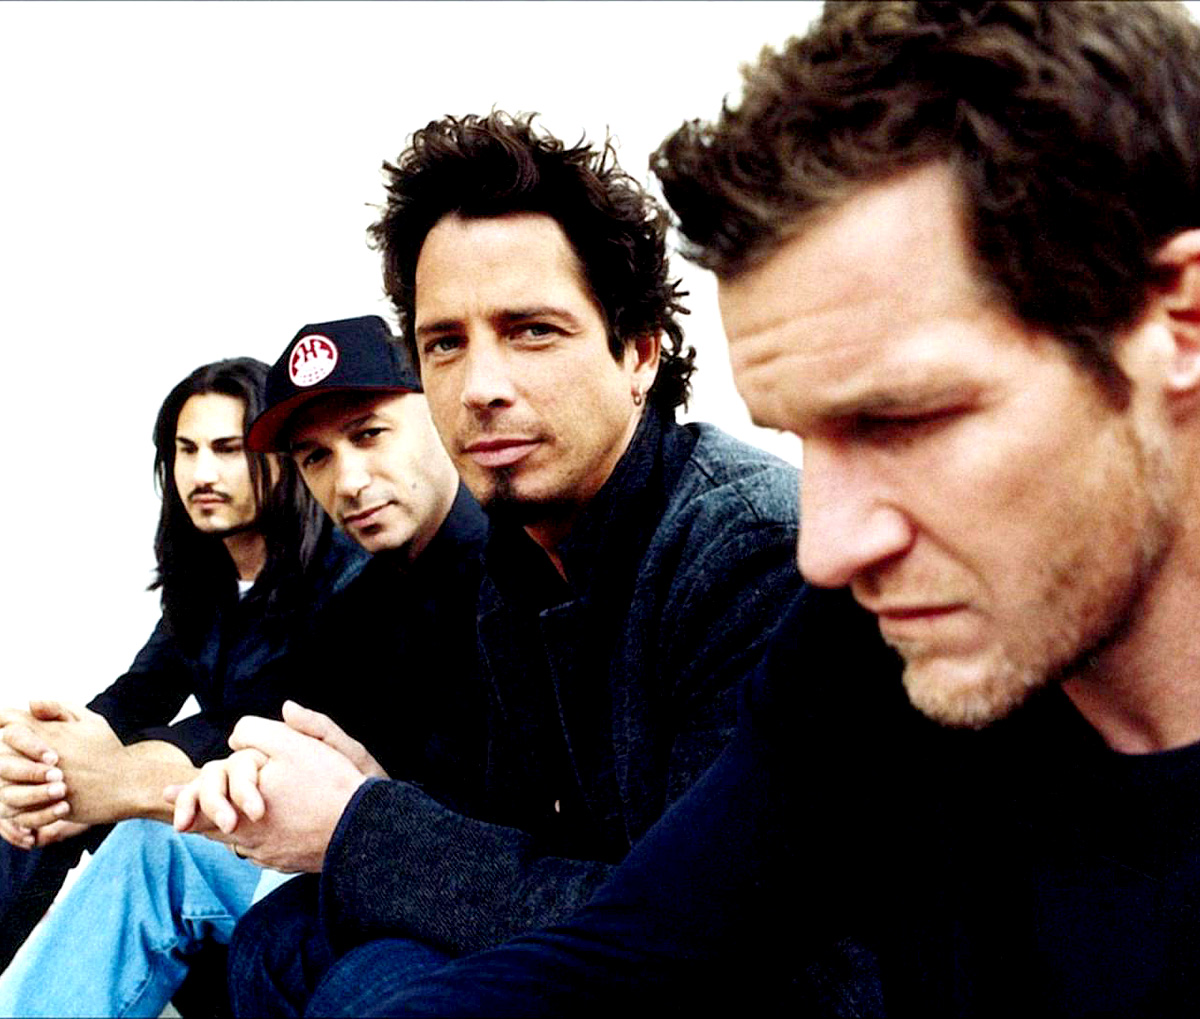 Audioslave – Live At Hultsfred Festival, Sweden 2003 – Past Daily Backstage Weekend